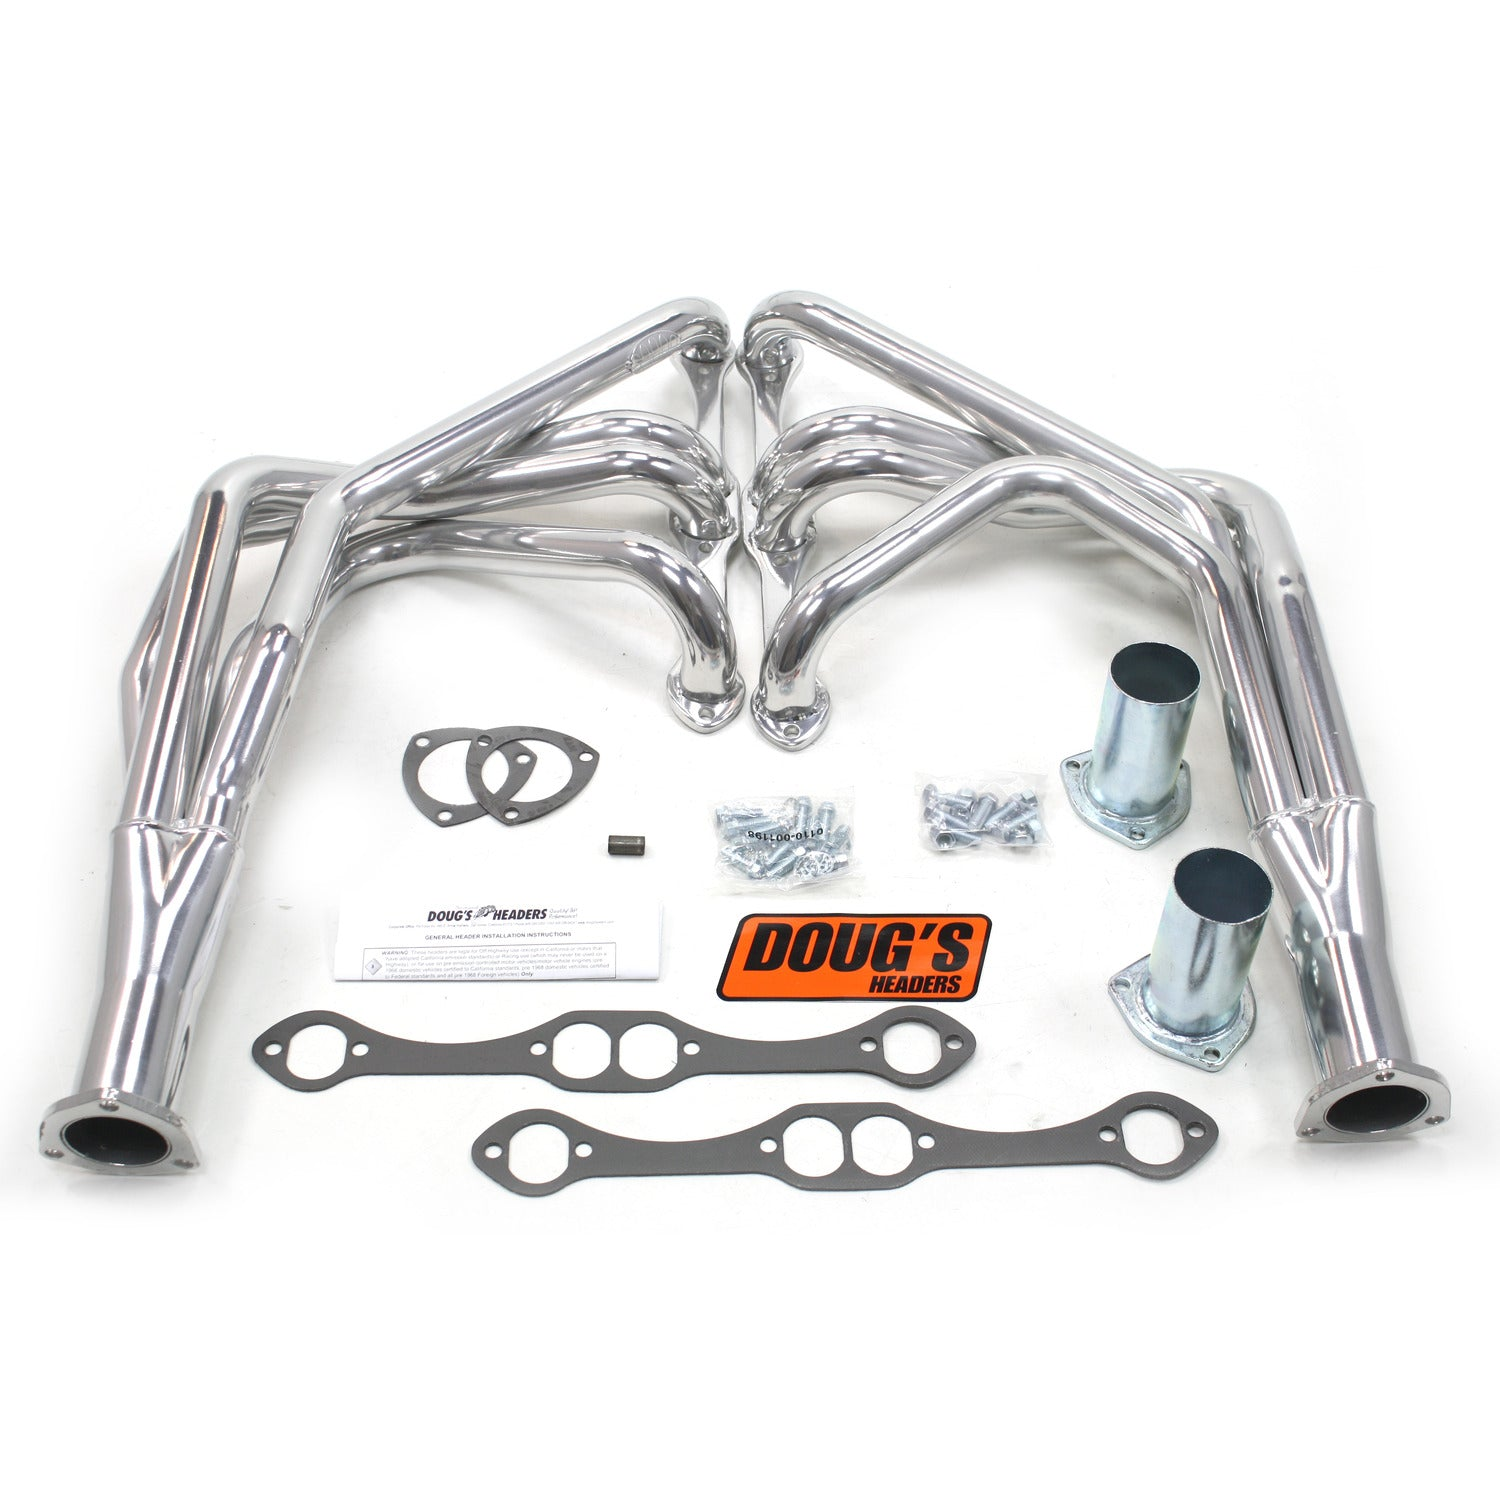 "Doug's Headers D315  1 5/8"" 4-Tube Full length Header Chevrolet Corvette Small Block Chevrolet 55-62 Metallic Ceramic Coating"